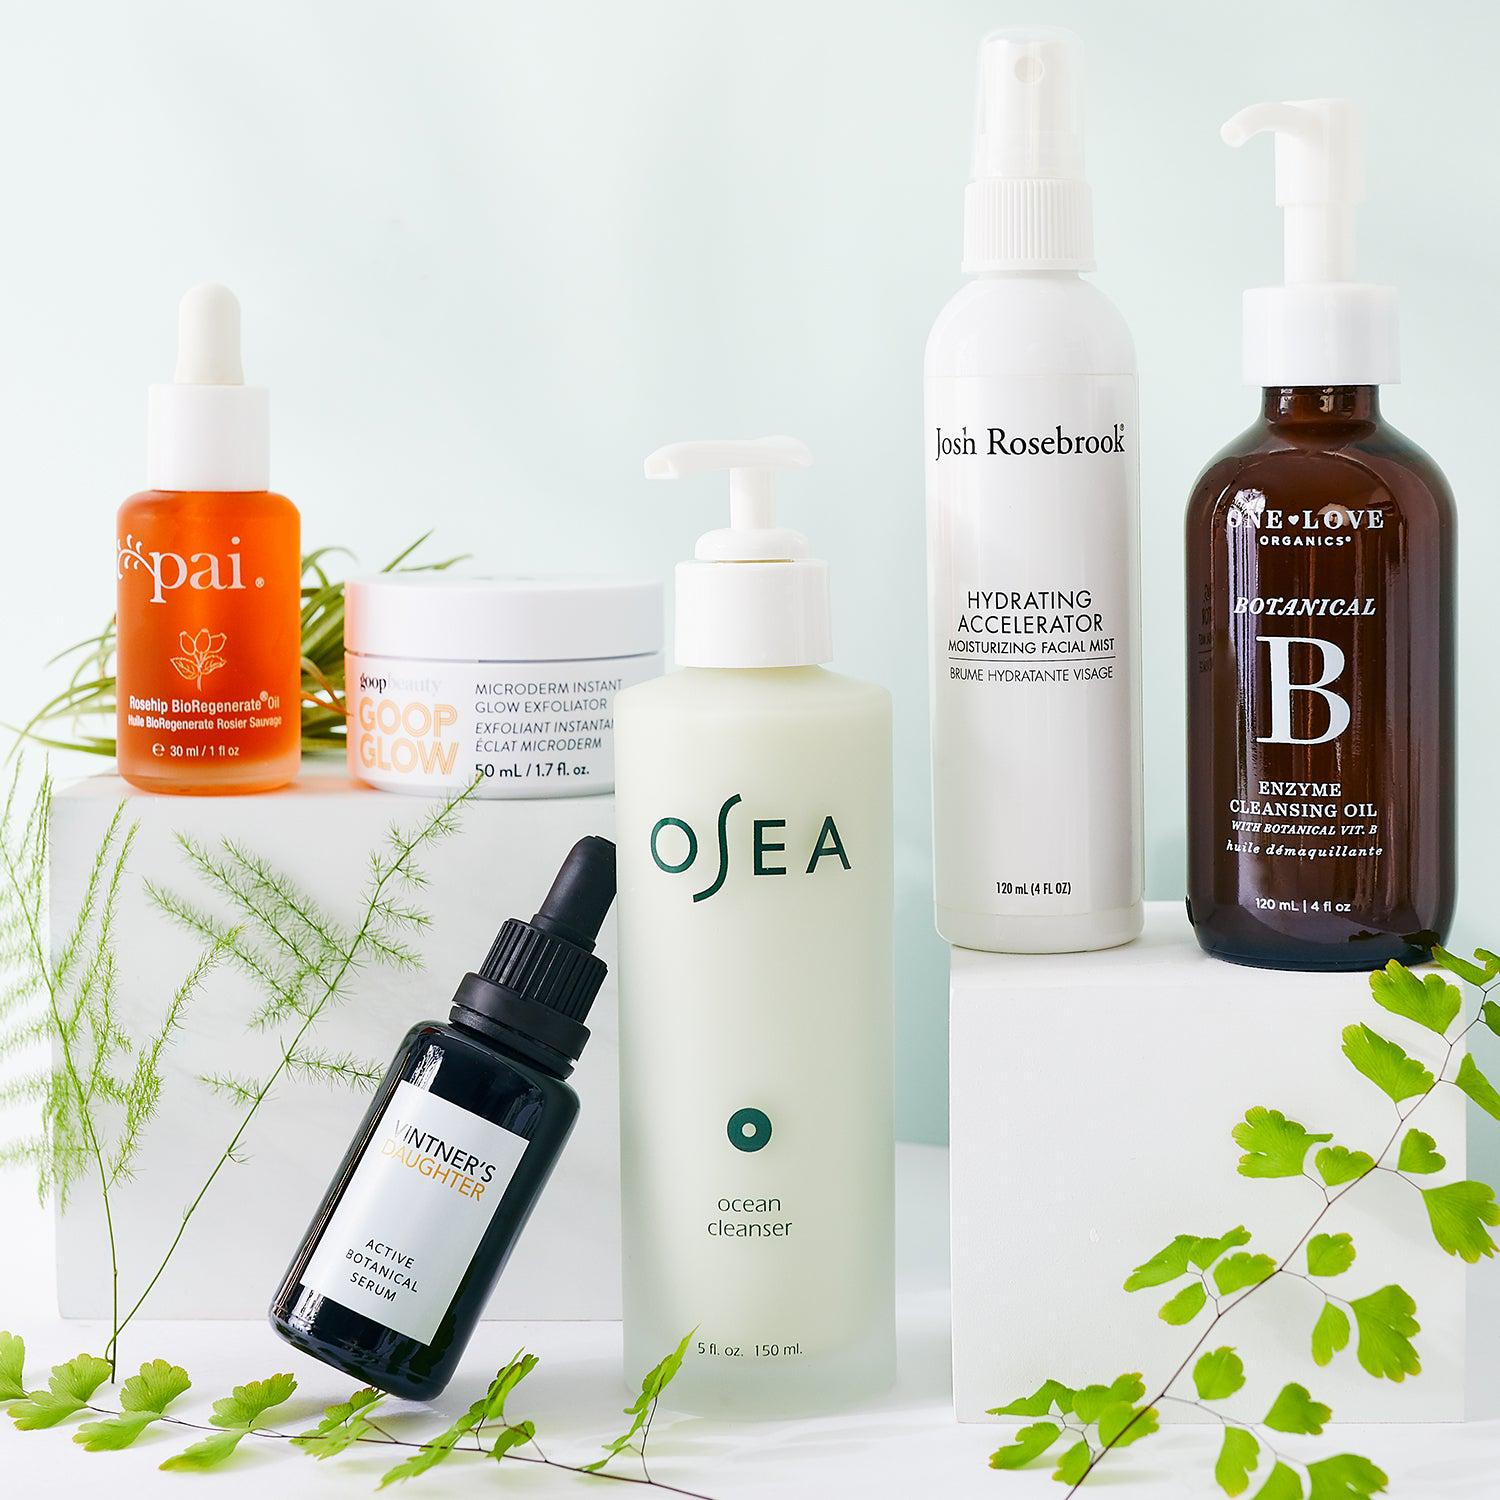 Clean skincare facial oil, serum, exfoliator, toner, cleanser, and cleansing oil from Pai, goop, Vintner's Daughter, Josh Rosebrook, and One Love Organics